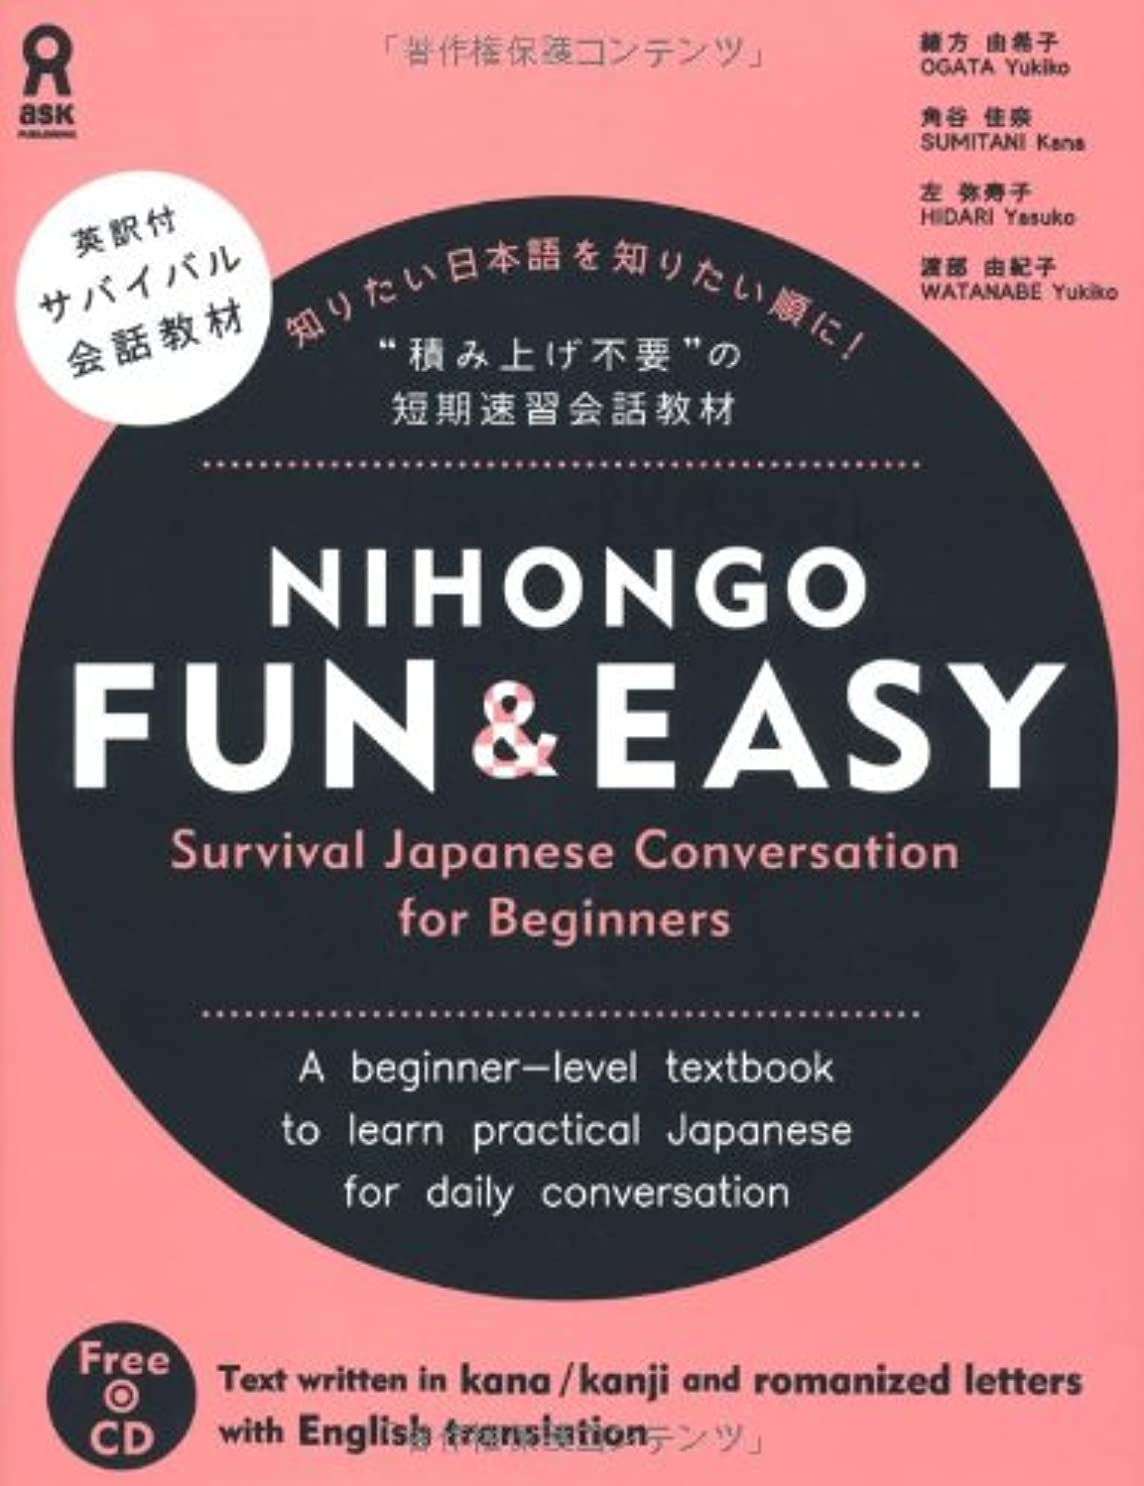 魚不測の事態恐れNIHONGO FUN & EASY Survival Japanese Conversation for Beginners